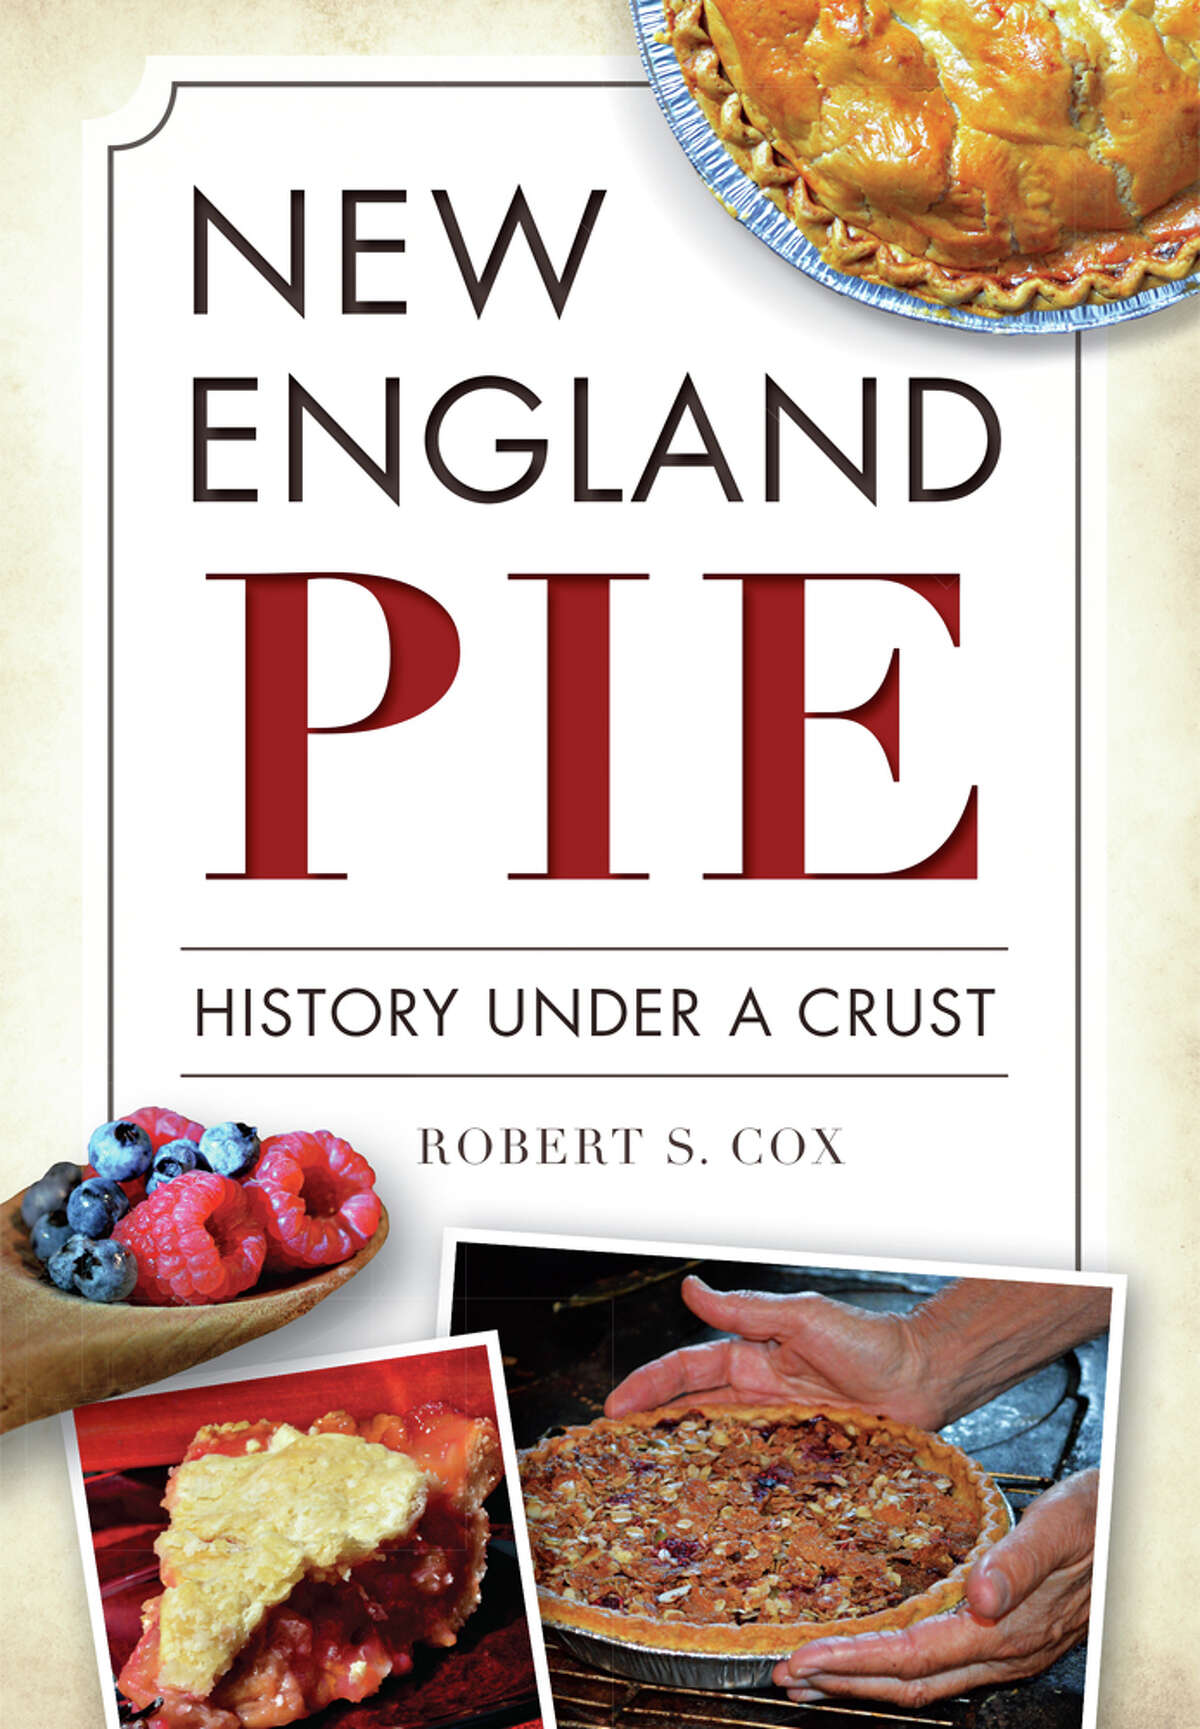 Robert Cox has written a history of pie